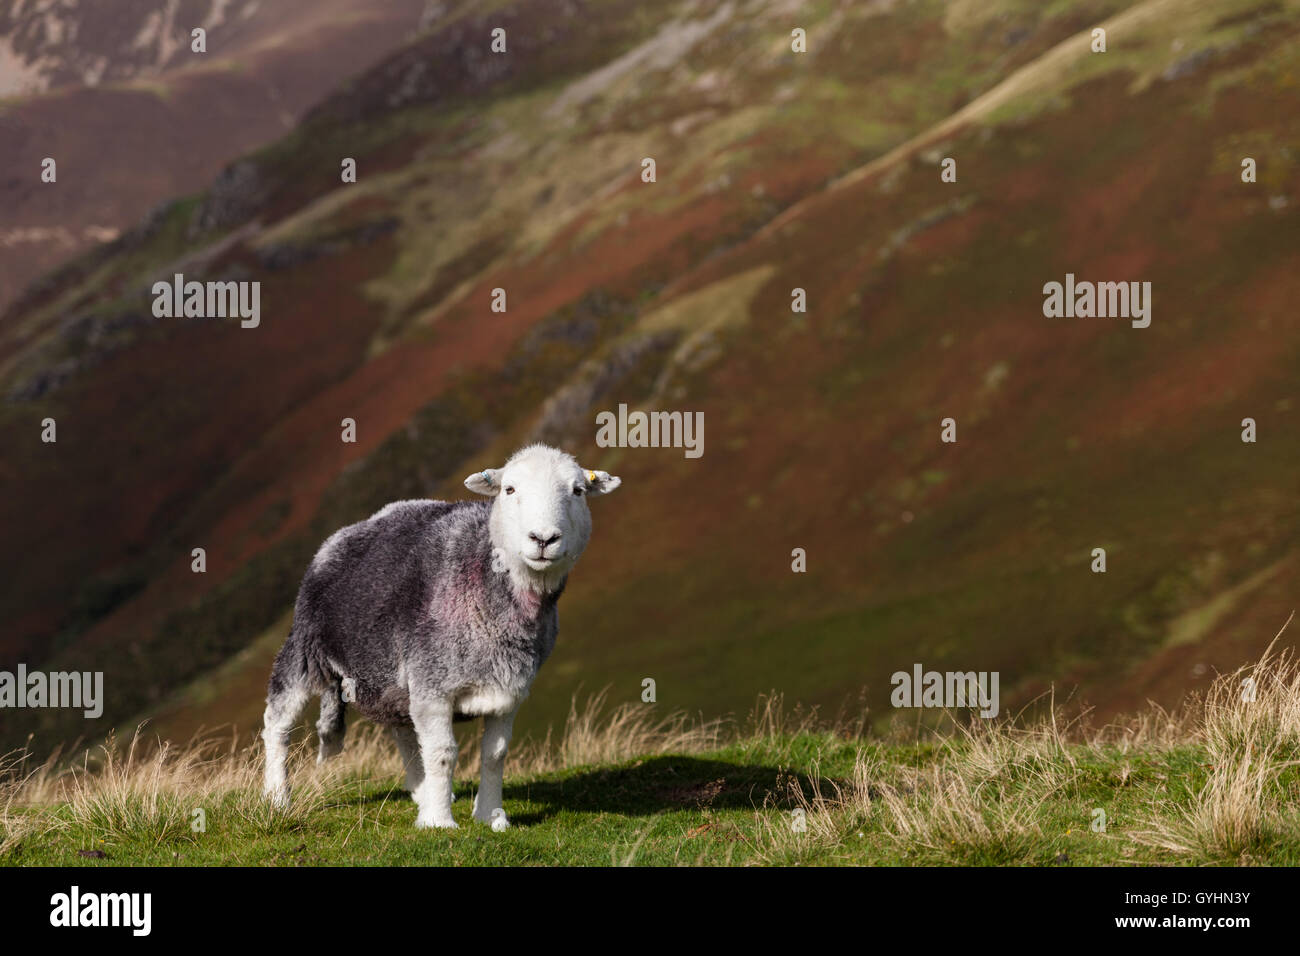 Herdwick sheep on the fells in the English Lake District in early Autumn with autumnal colours on the mountains - Stock Image